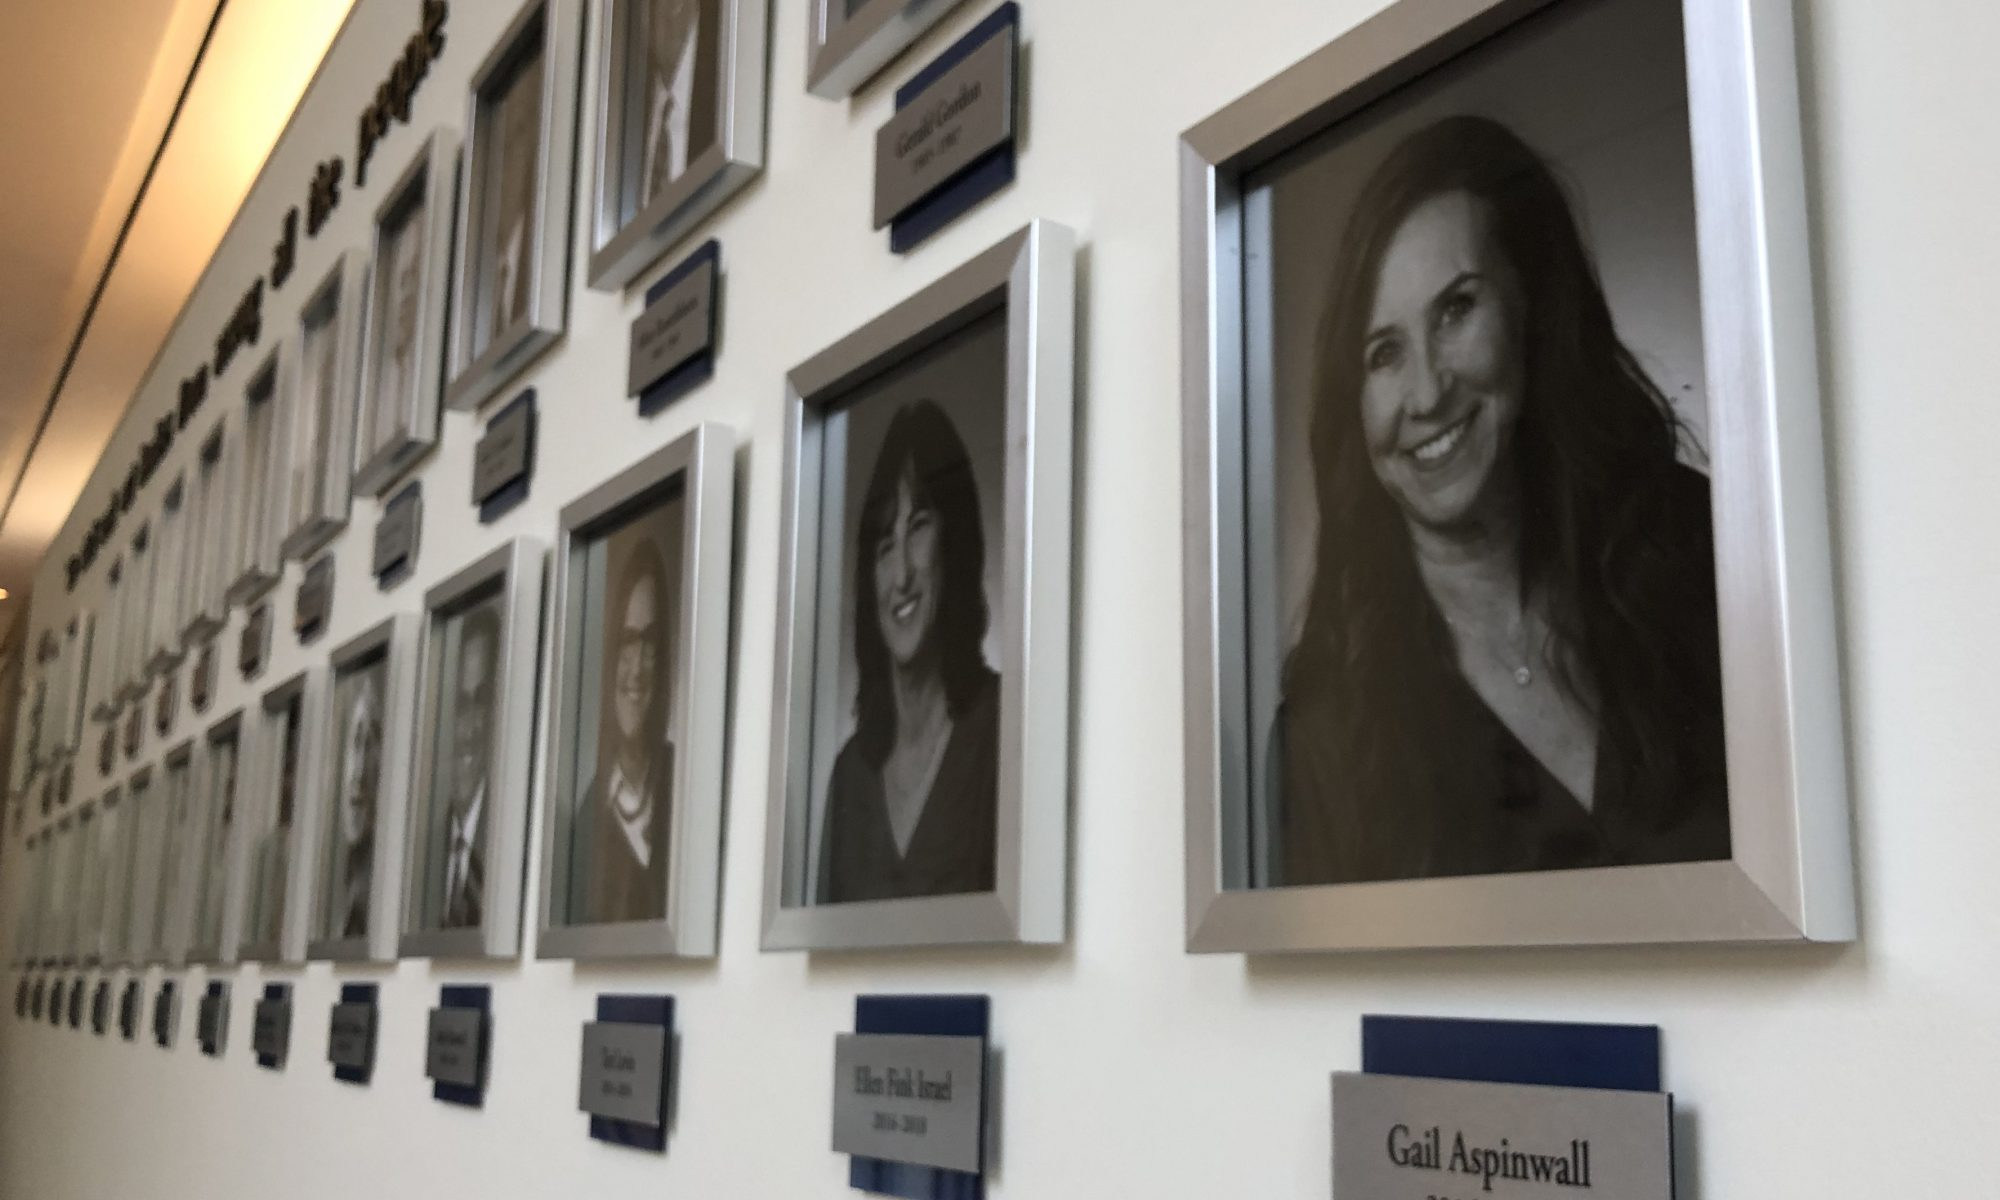 Temple Judea wanted to commemorate its past presidents. So we created multi-layered wall name plaques to label each president's photo and years served.